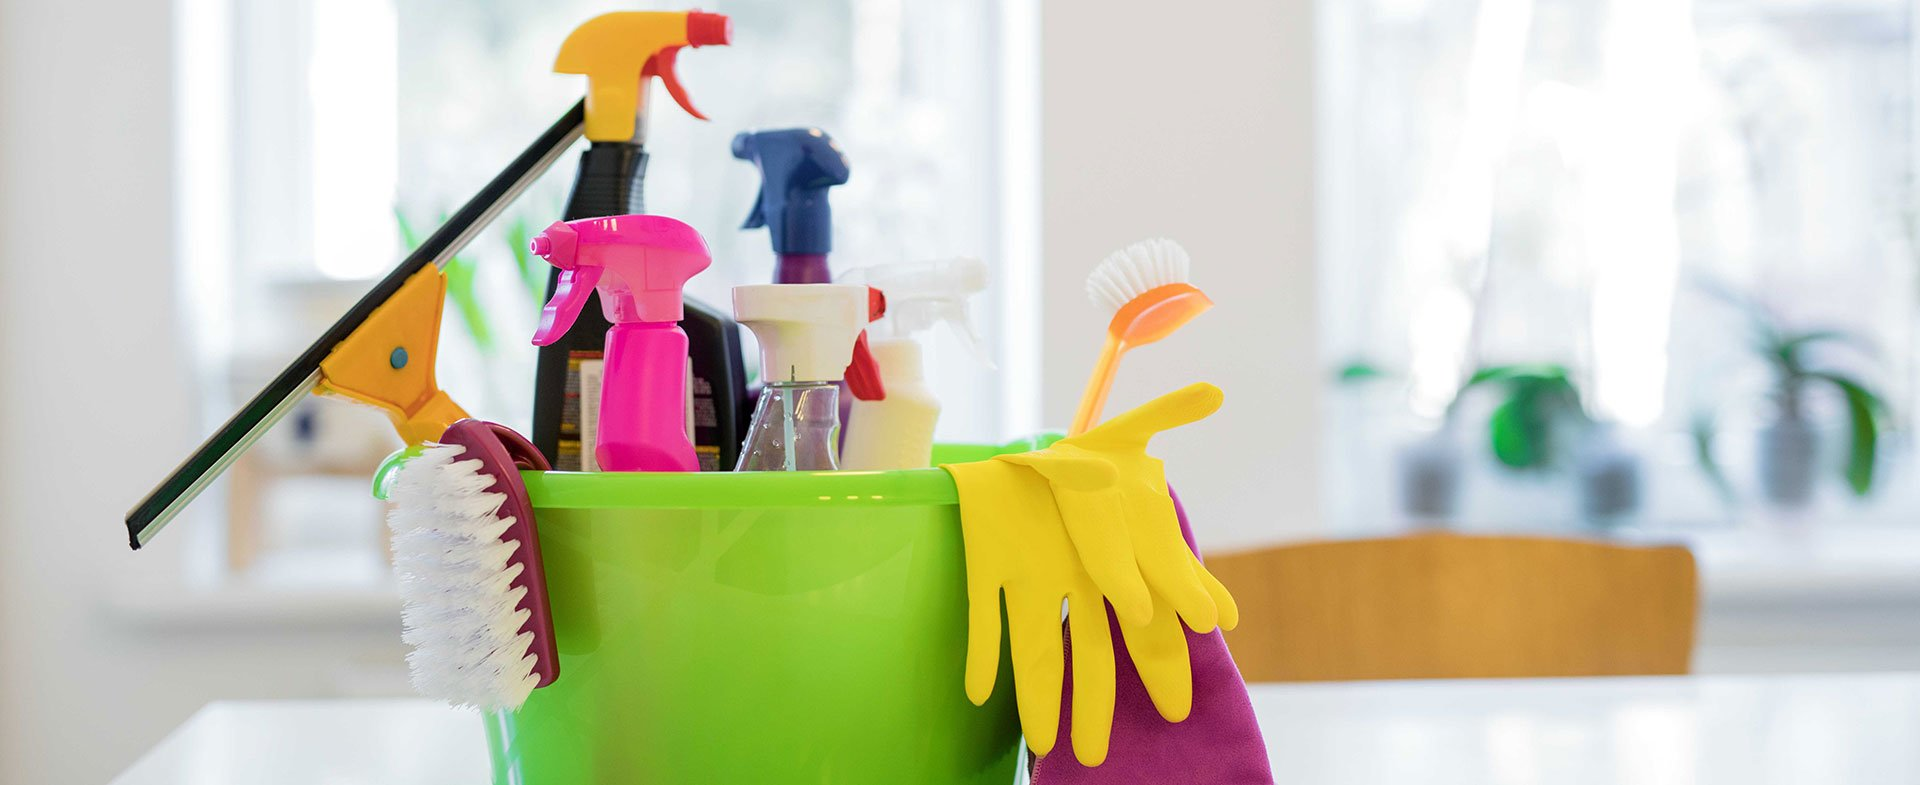 It is Time to Clean my House